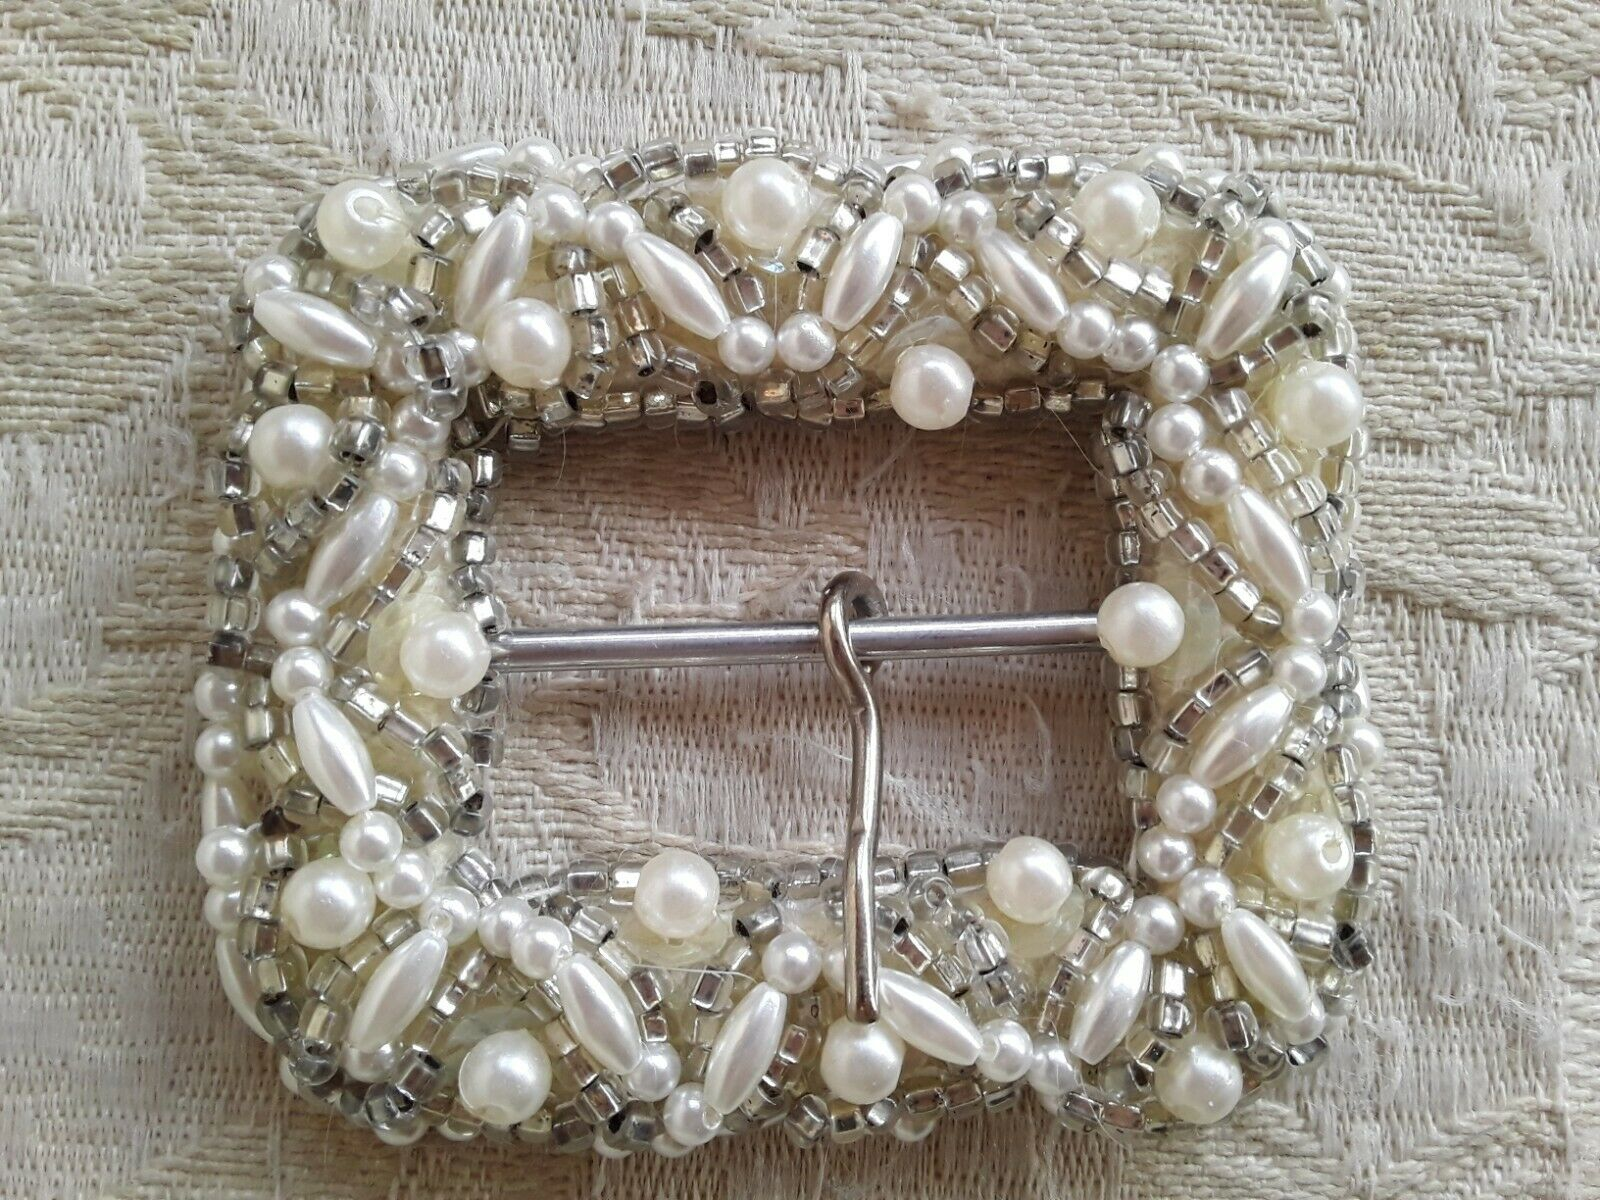 Vintage Pearl and Tiny Silver Beaded Embellished Belt Buckle Made in Hong Kong